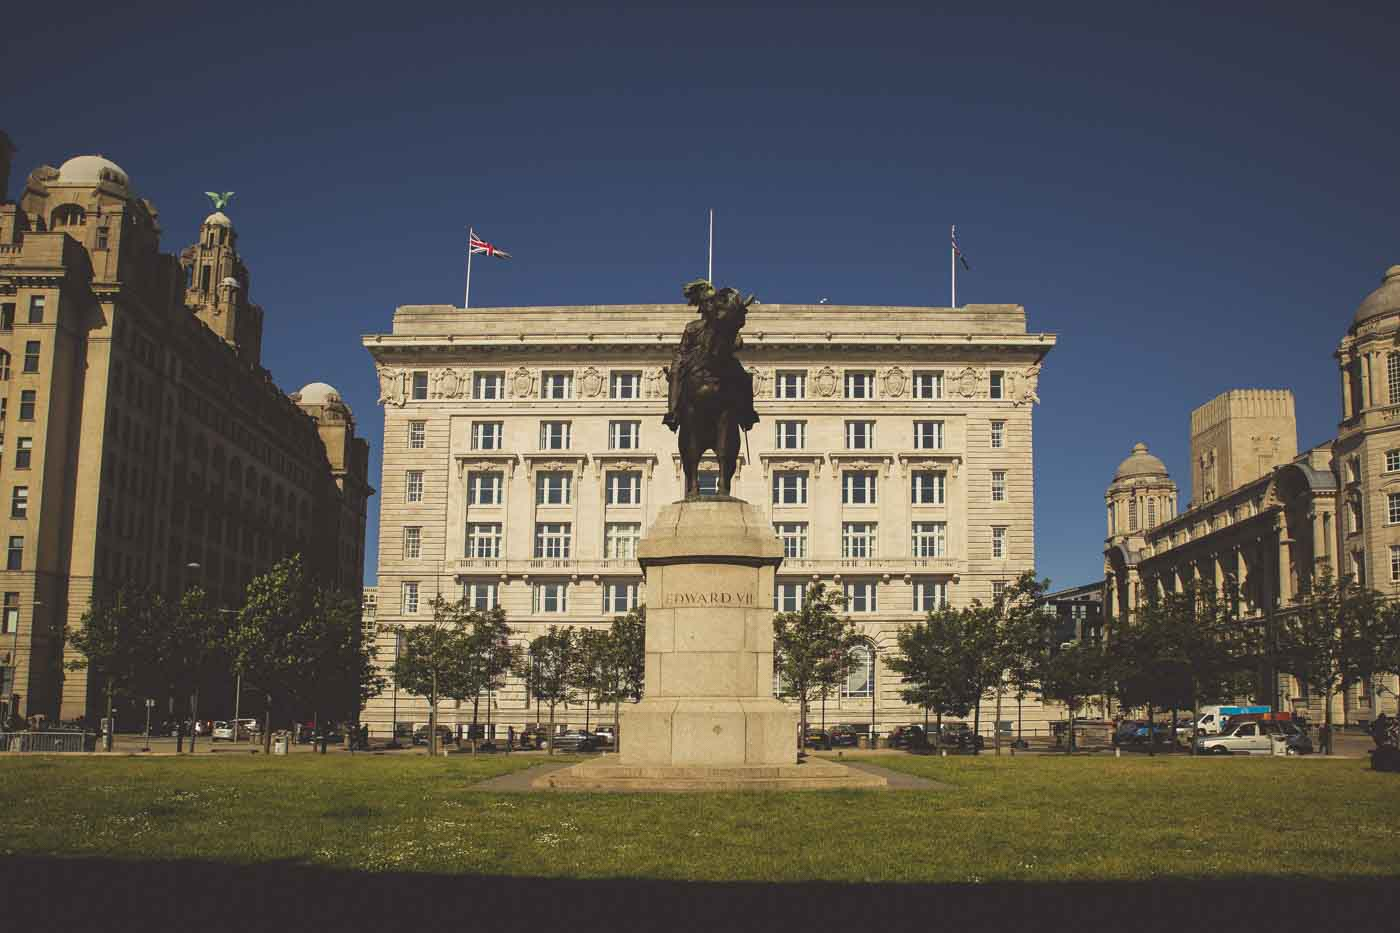 king edward vii statue, liverpool